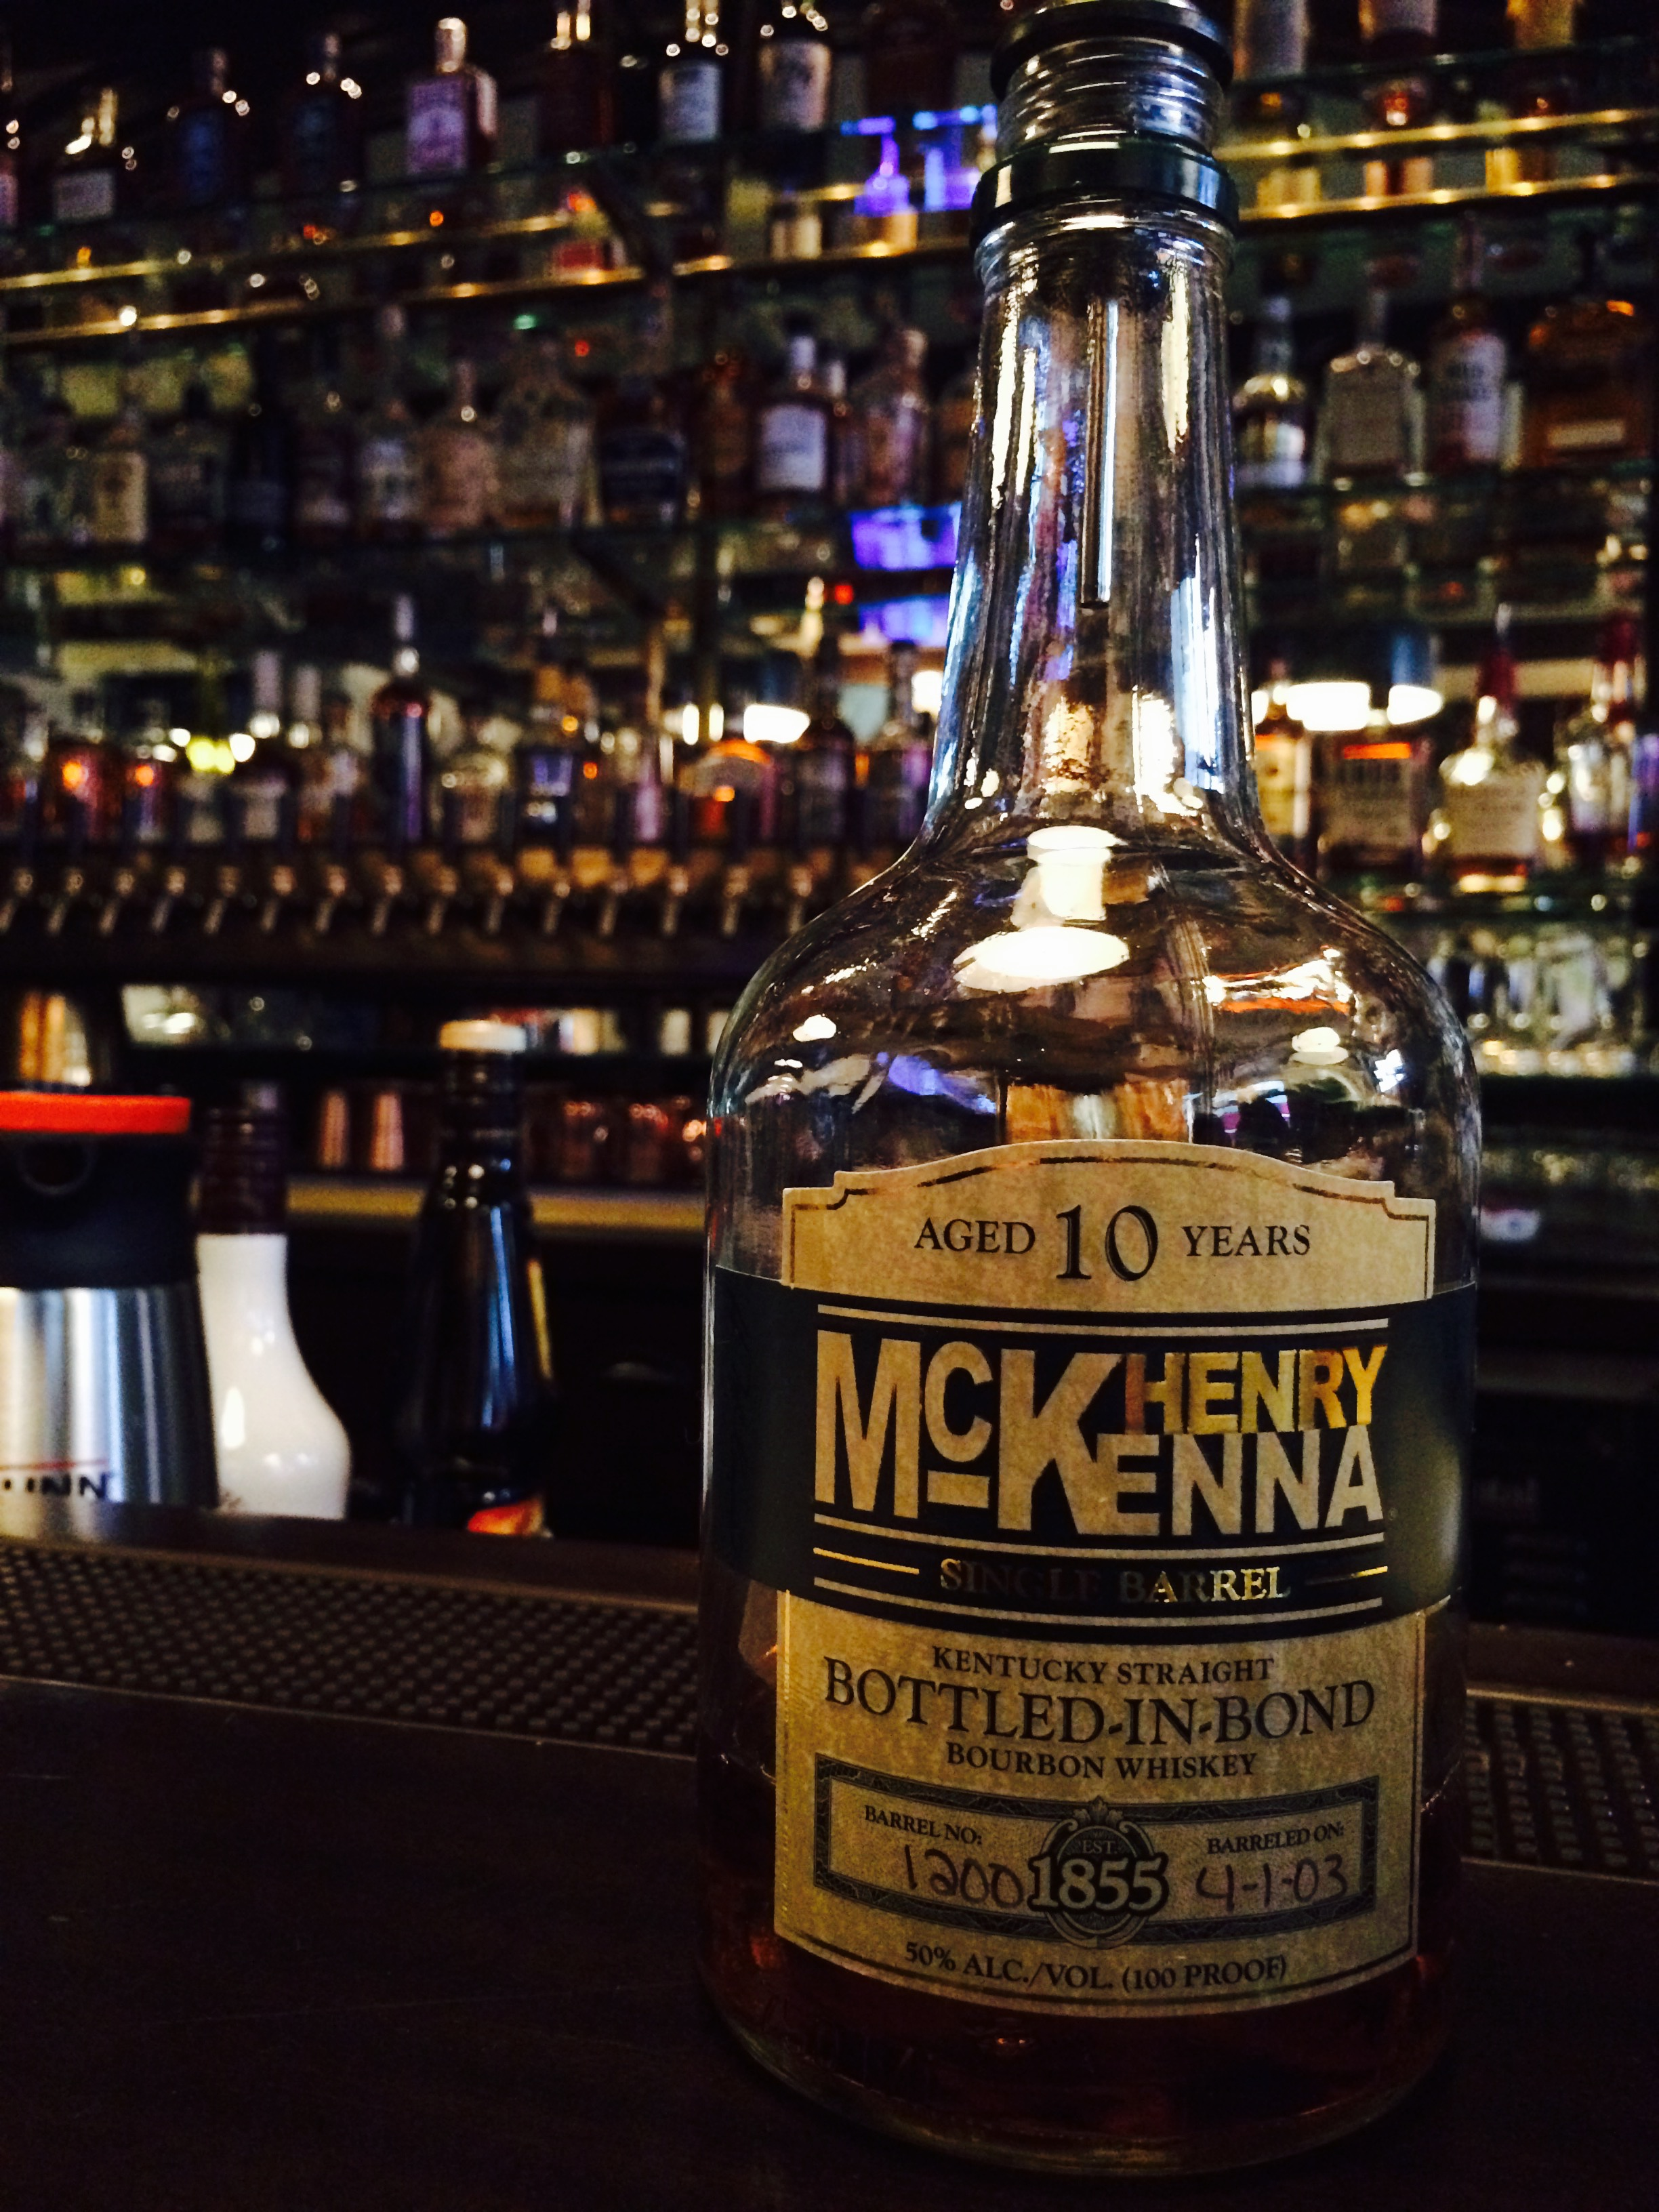 Henry McKenna Single Barrel Bourbon Whiskey Bottle at Produce Row Cafe